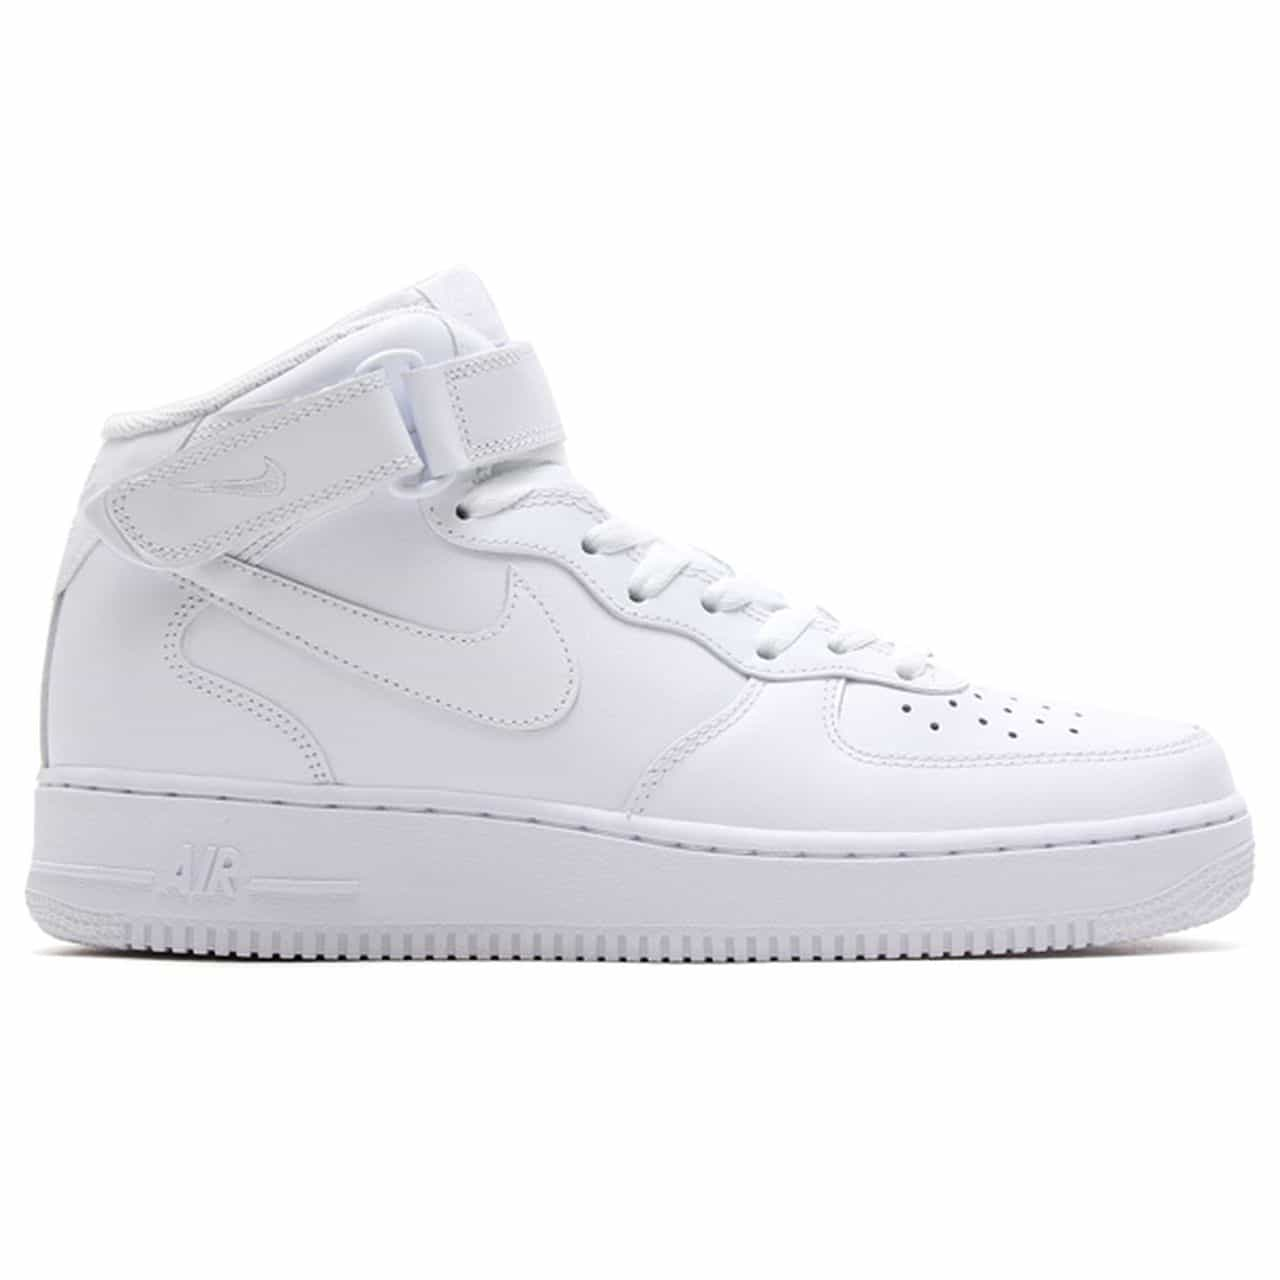 ADIDASI ORIGINALI NIKE AIR FORCE 1 MID '07 - 315123 111